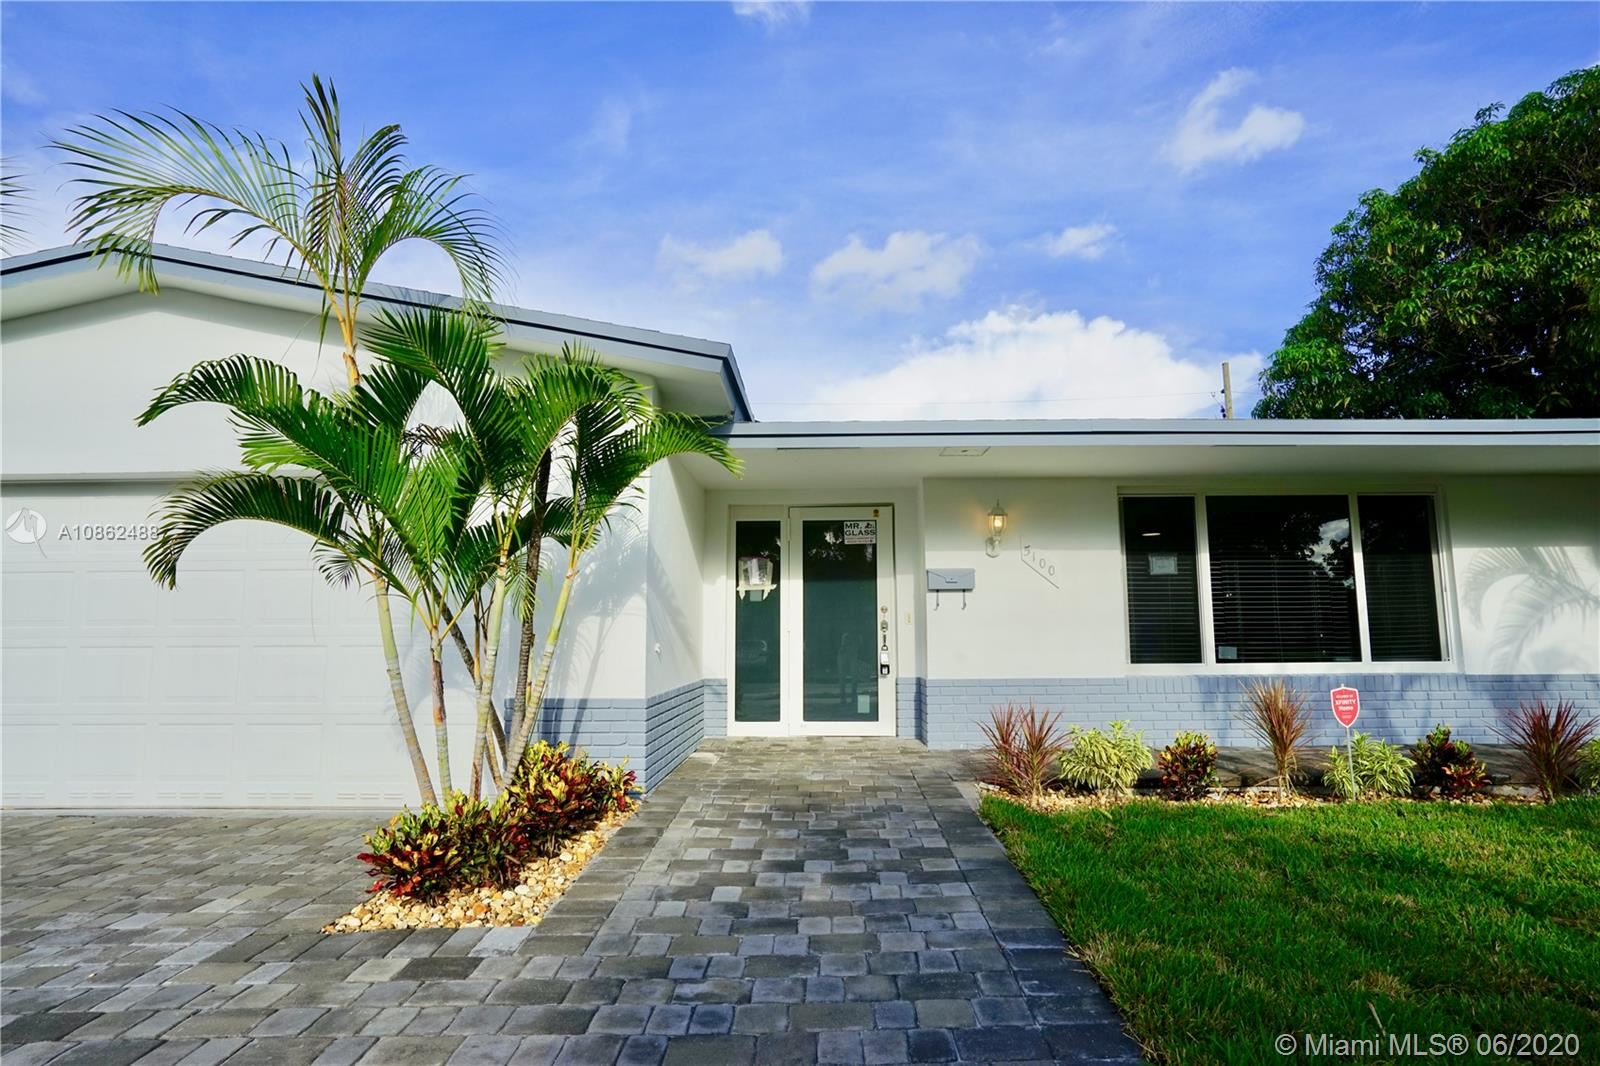 Photo of 5100 NE 14th Ter, Fort Lauderdale, FL 33334 (MLS # A10862488)